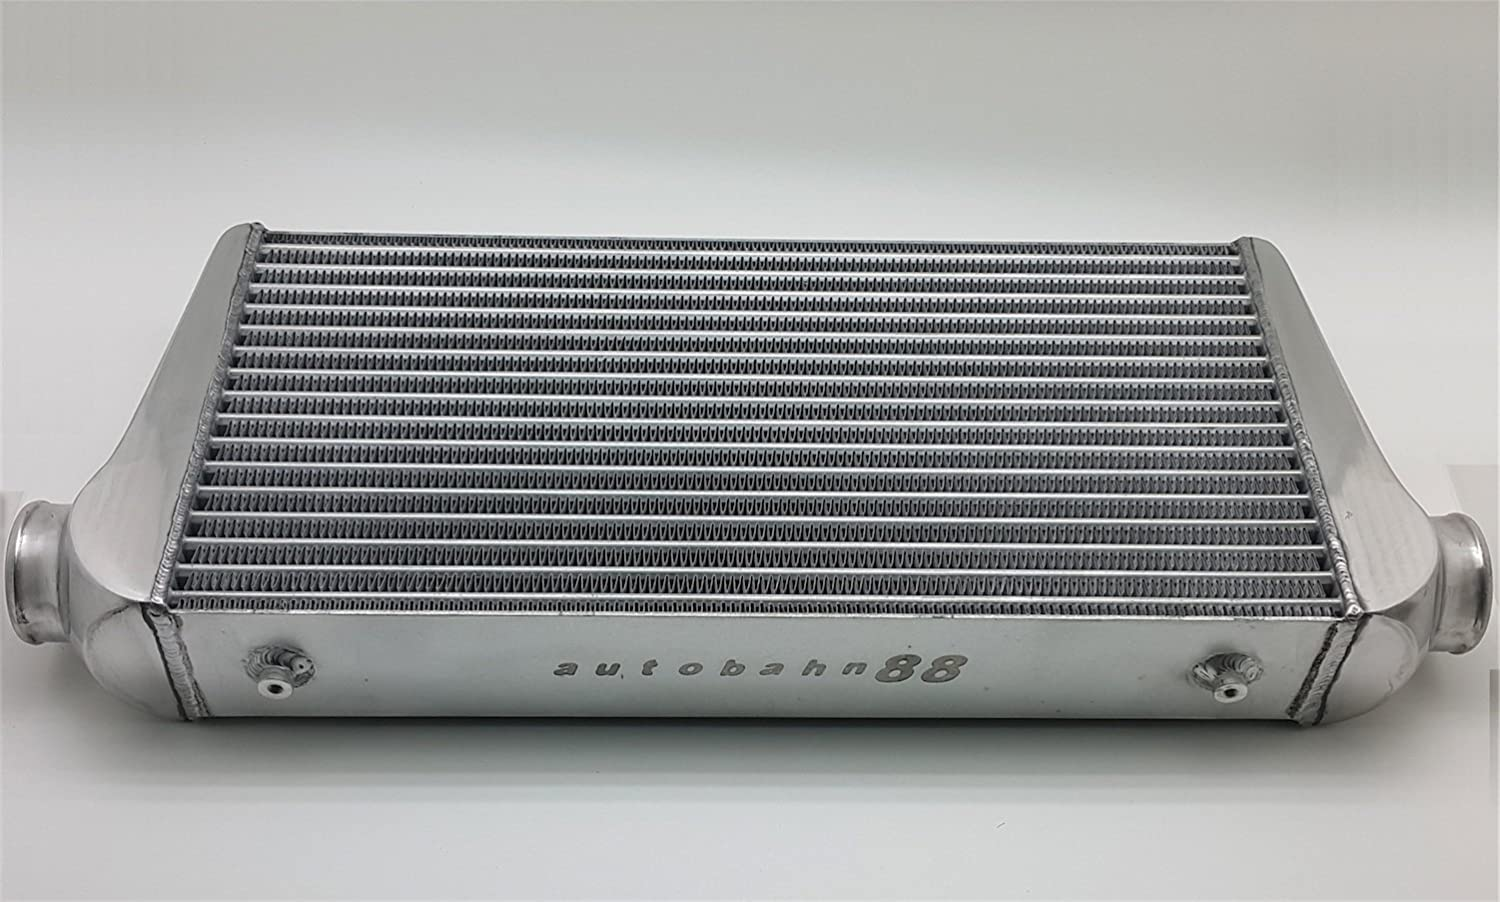 Amazon.com: Autobahn88 Universal Front-Mount Intercooler FMIC, GT-Type, Core Size 600x300x100mm (24x12x4